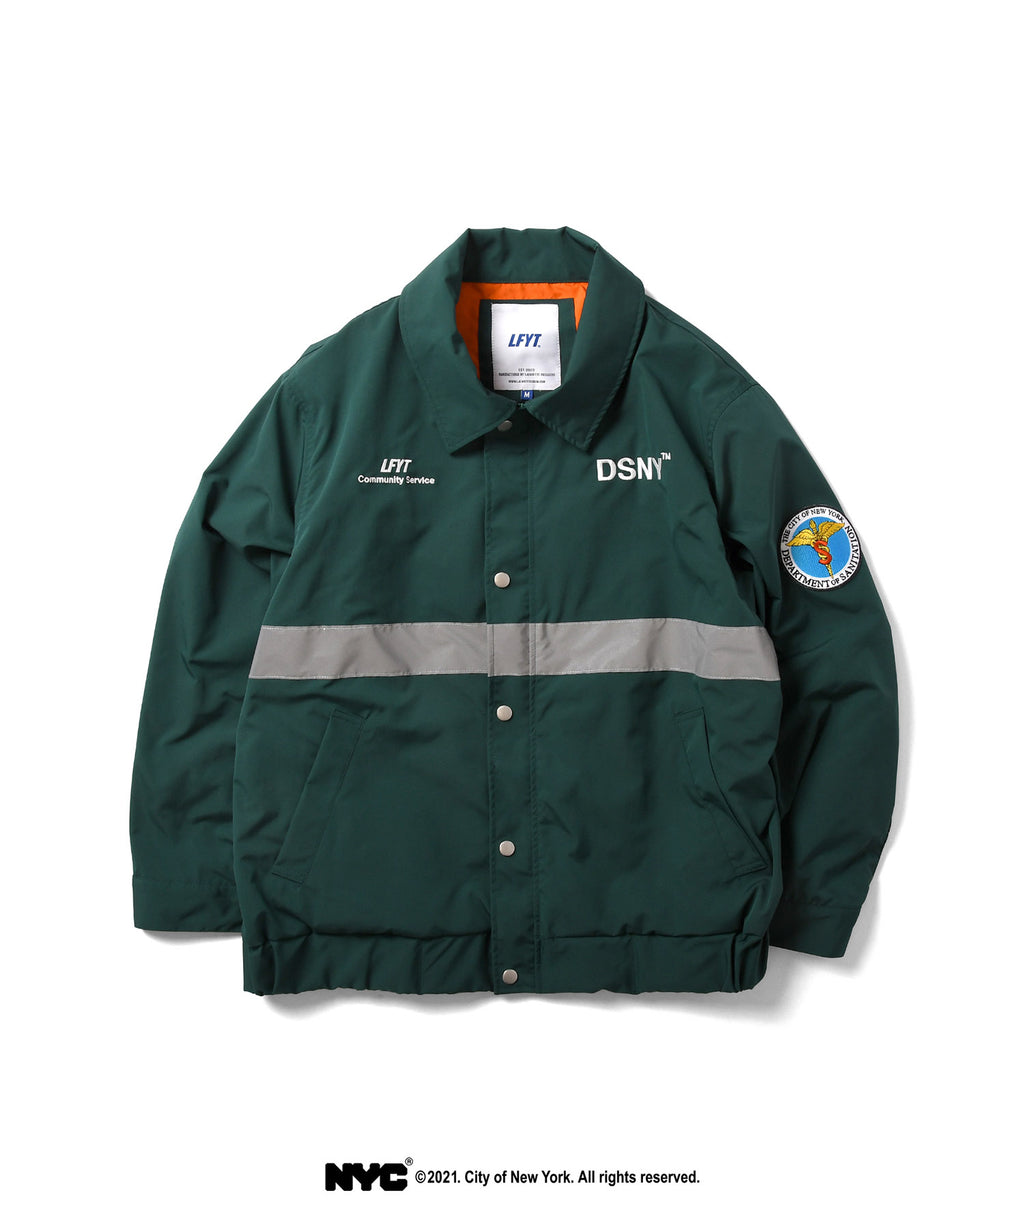 LFYT X DSNY COMMUNITY SERVICES WORKER JACKET LS211003 DARK GREEN